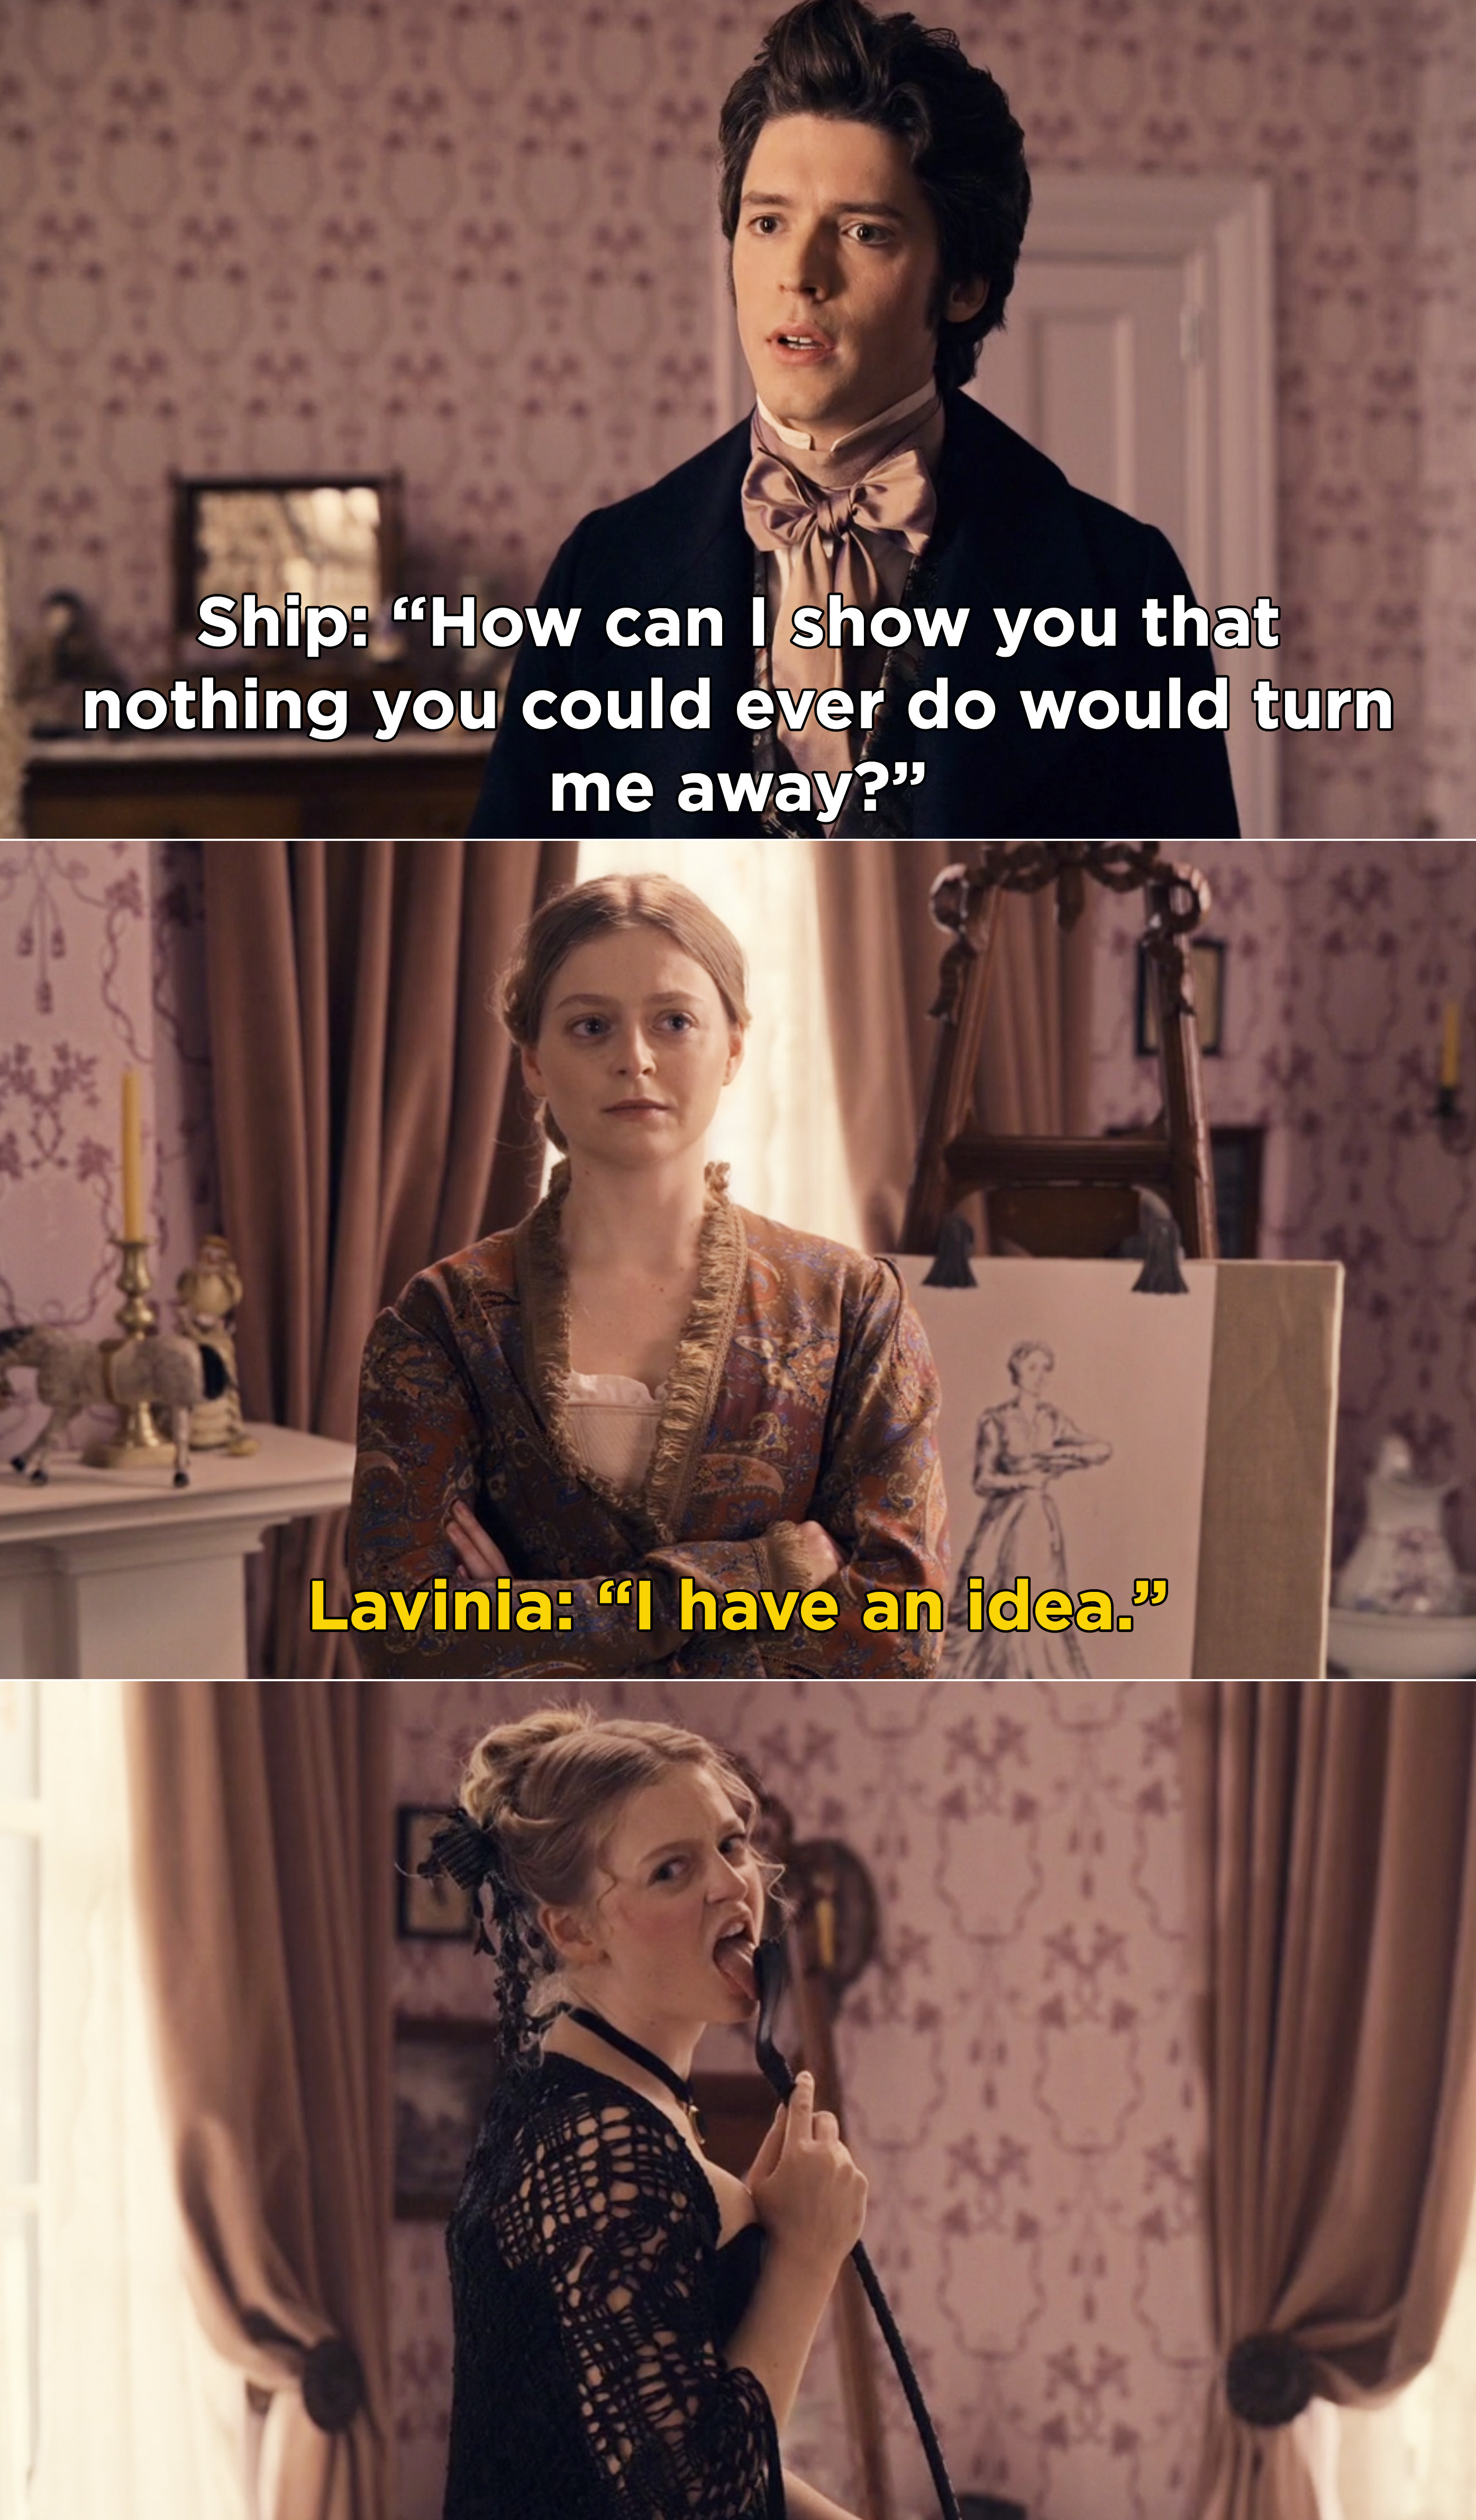 Ship saying nothing Lavinia can do would ever drive him away, and then Lavinia licking a whip while wearing all black